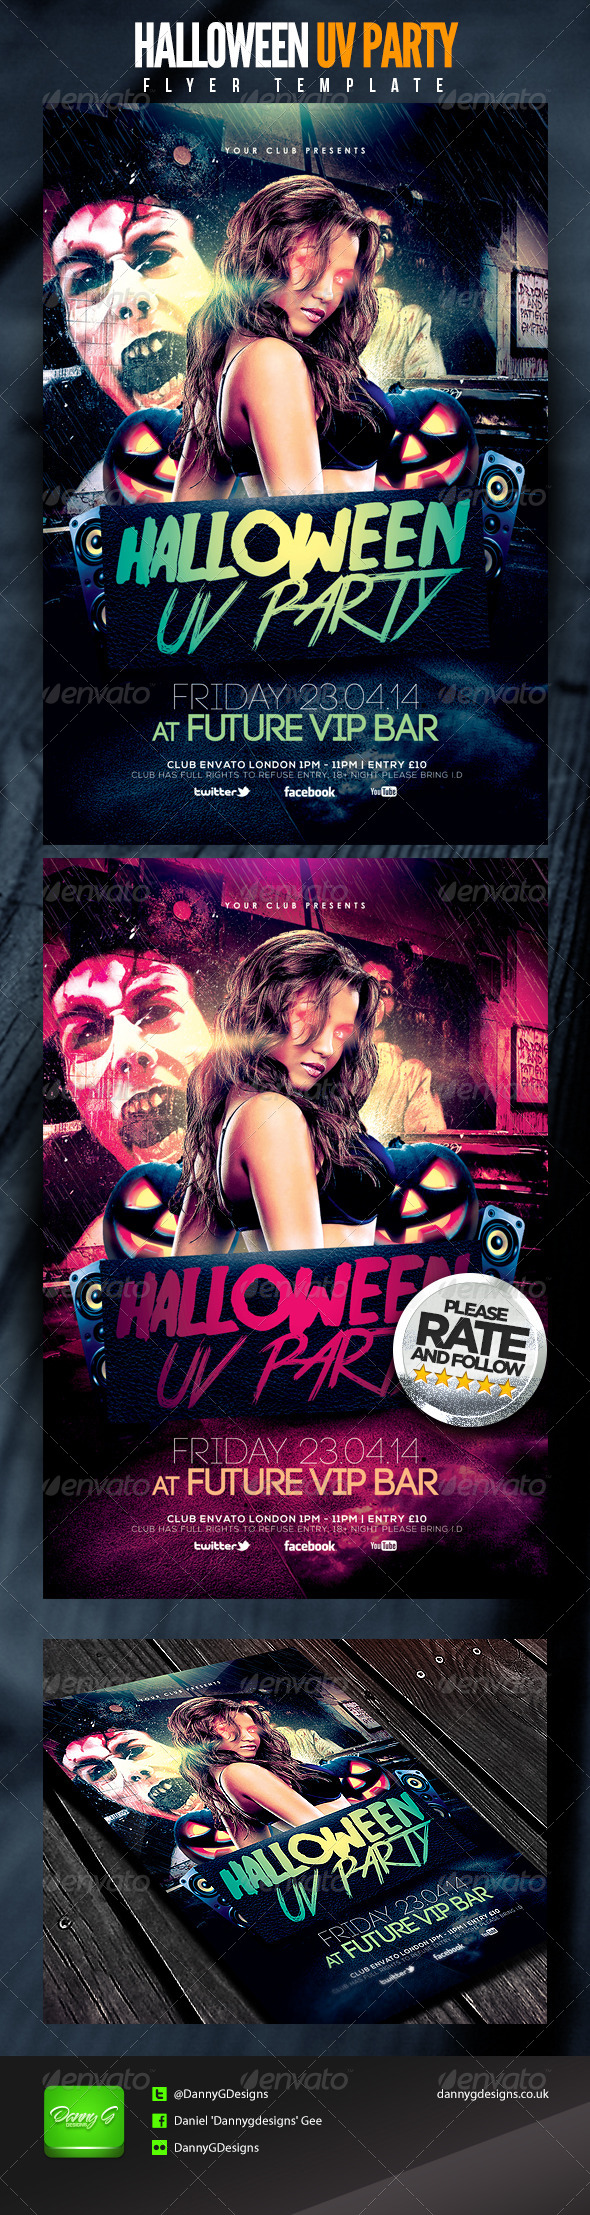 Halloween UV Party Flyer Template - Clubs & Parties Events